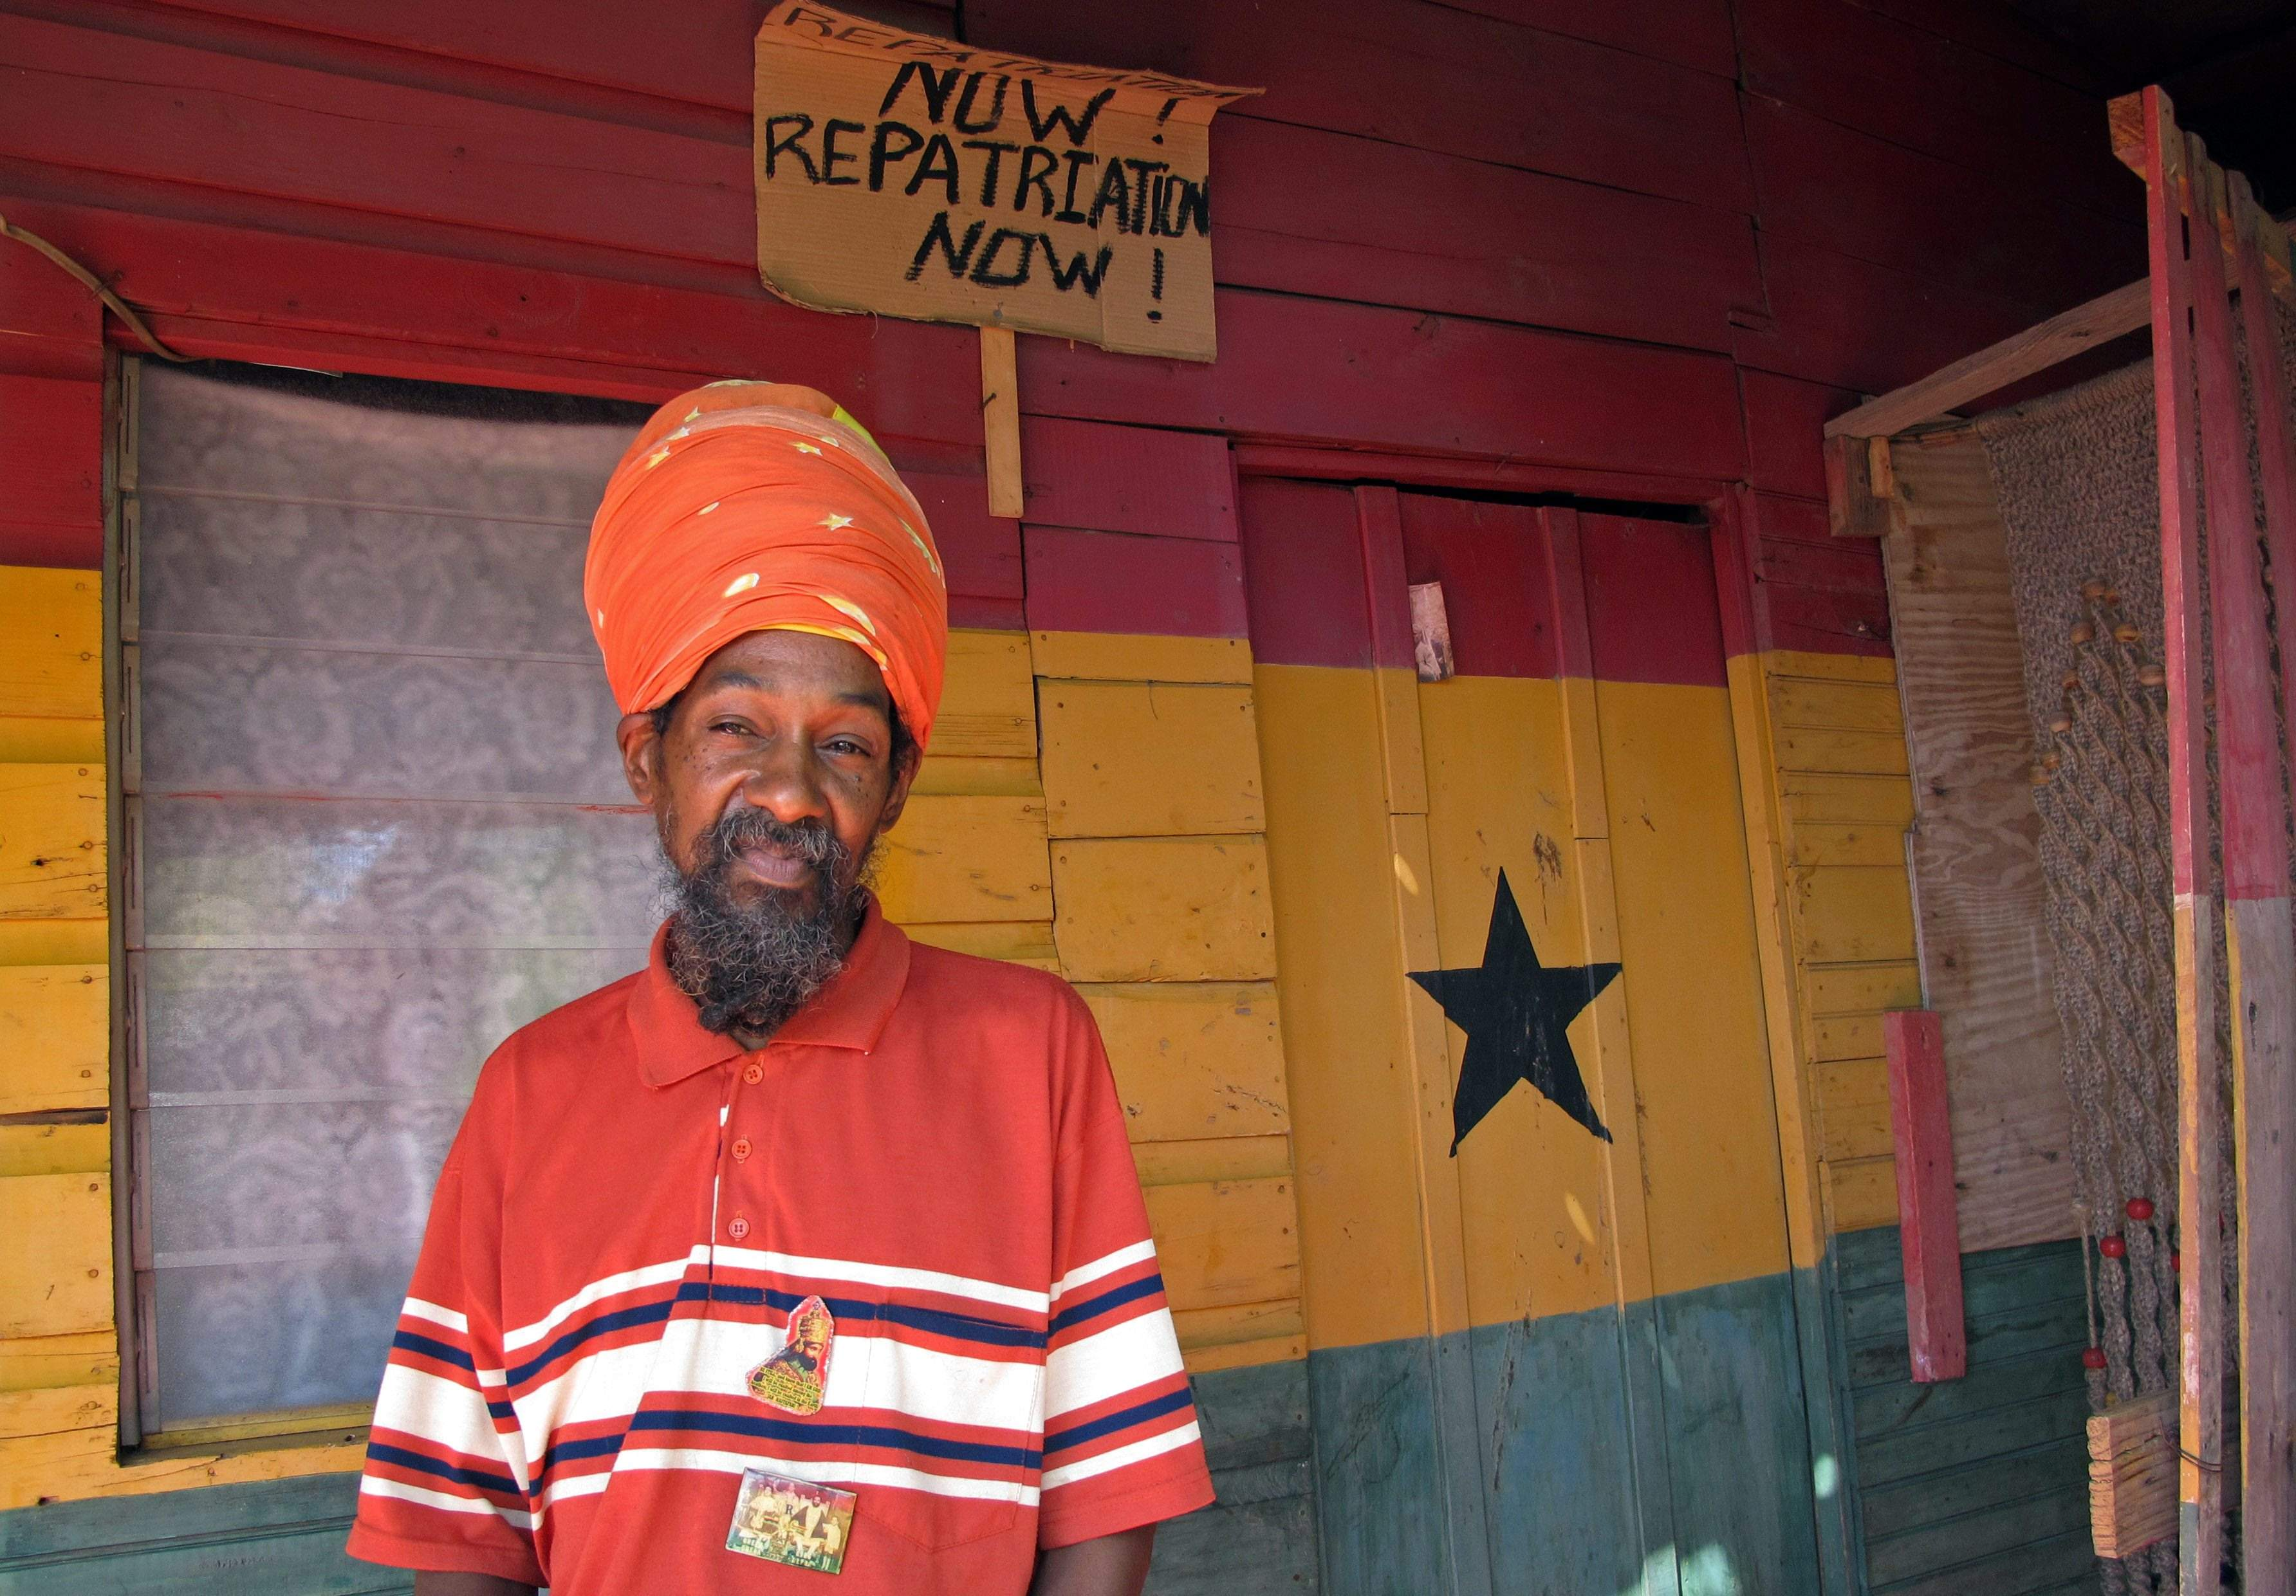 rastafarianism Afrocentrism socially, rastafari is a response to racist negation of black people as it was experienced in jamaica, where in the 1930s, black people were at the bottom of the social order, while white people and their (predominantly christian) religion were at the top.